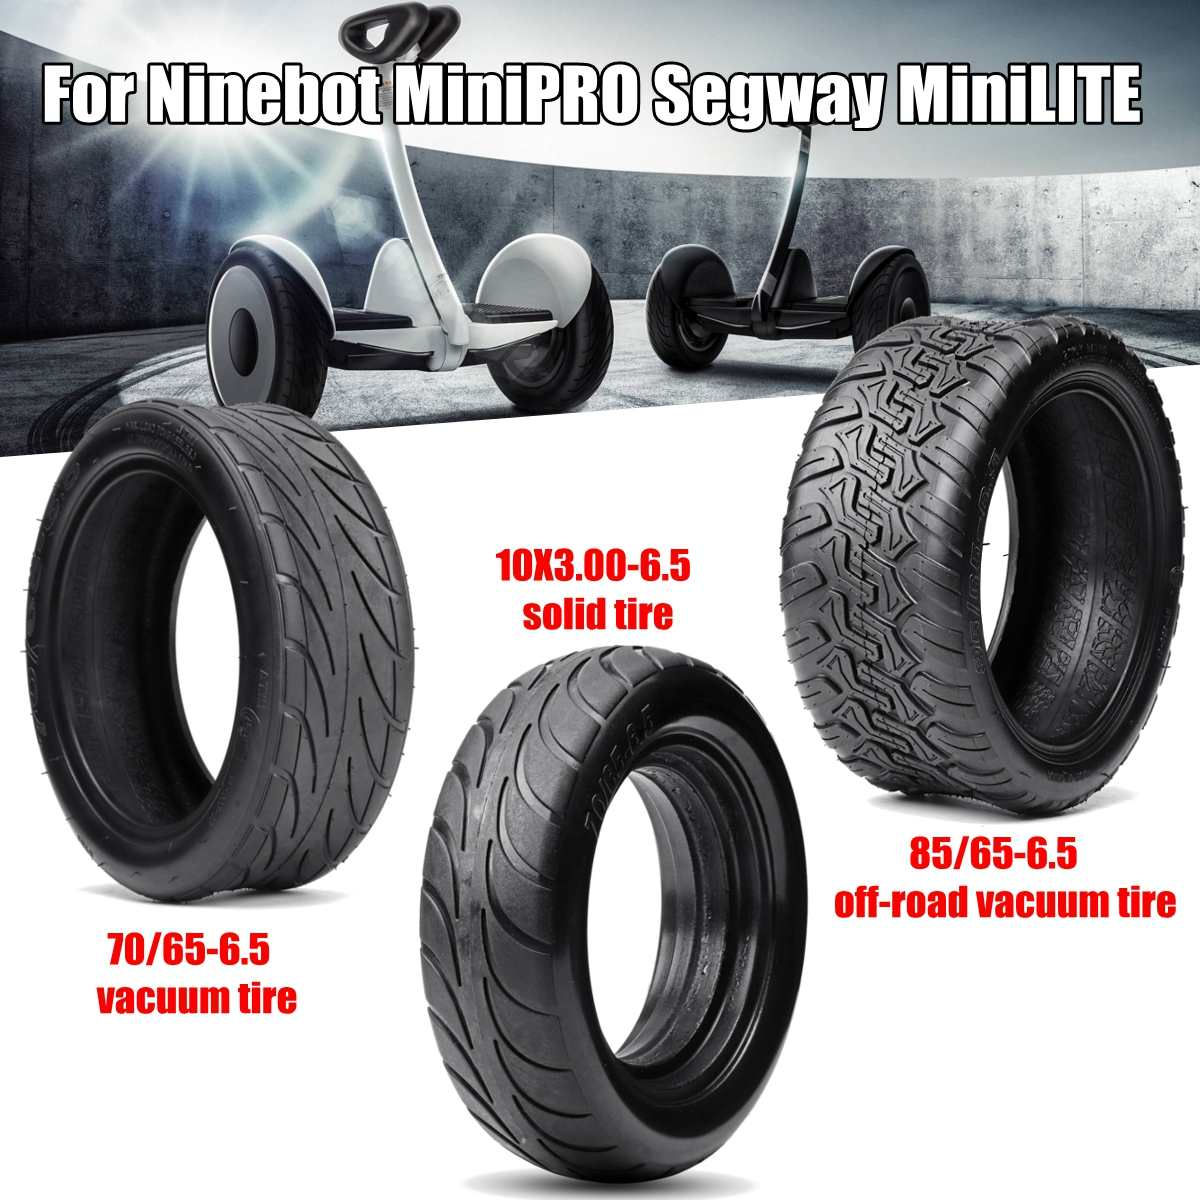 Ninebot MiniPRO Scooter Off Road Tire Tubeless Tyre for Segway MiniLITE Scooter